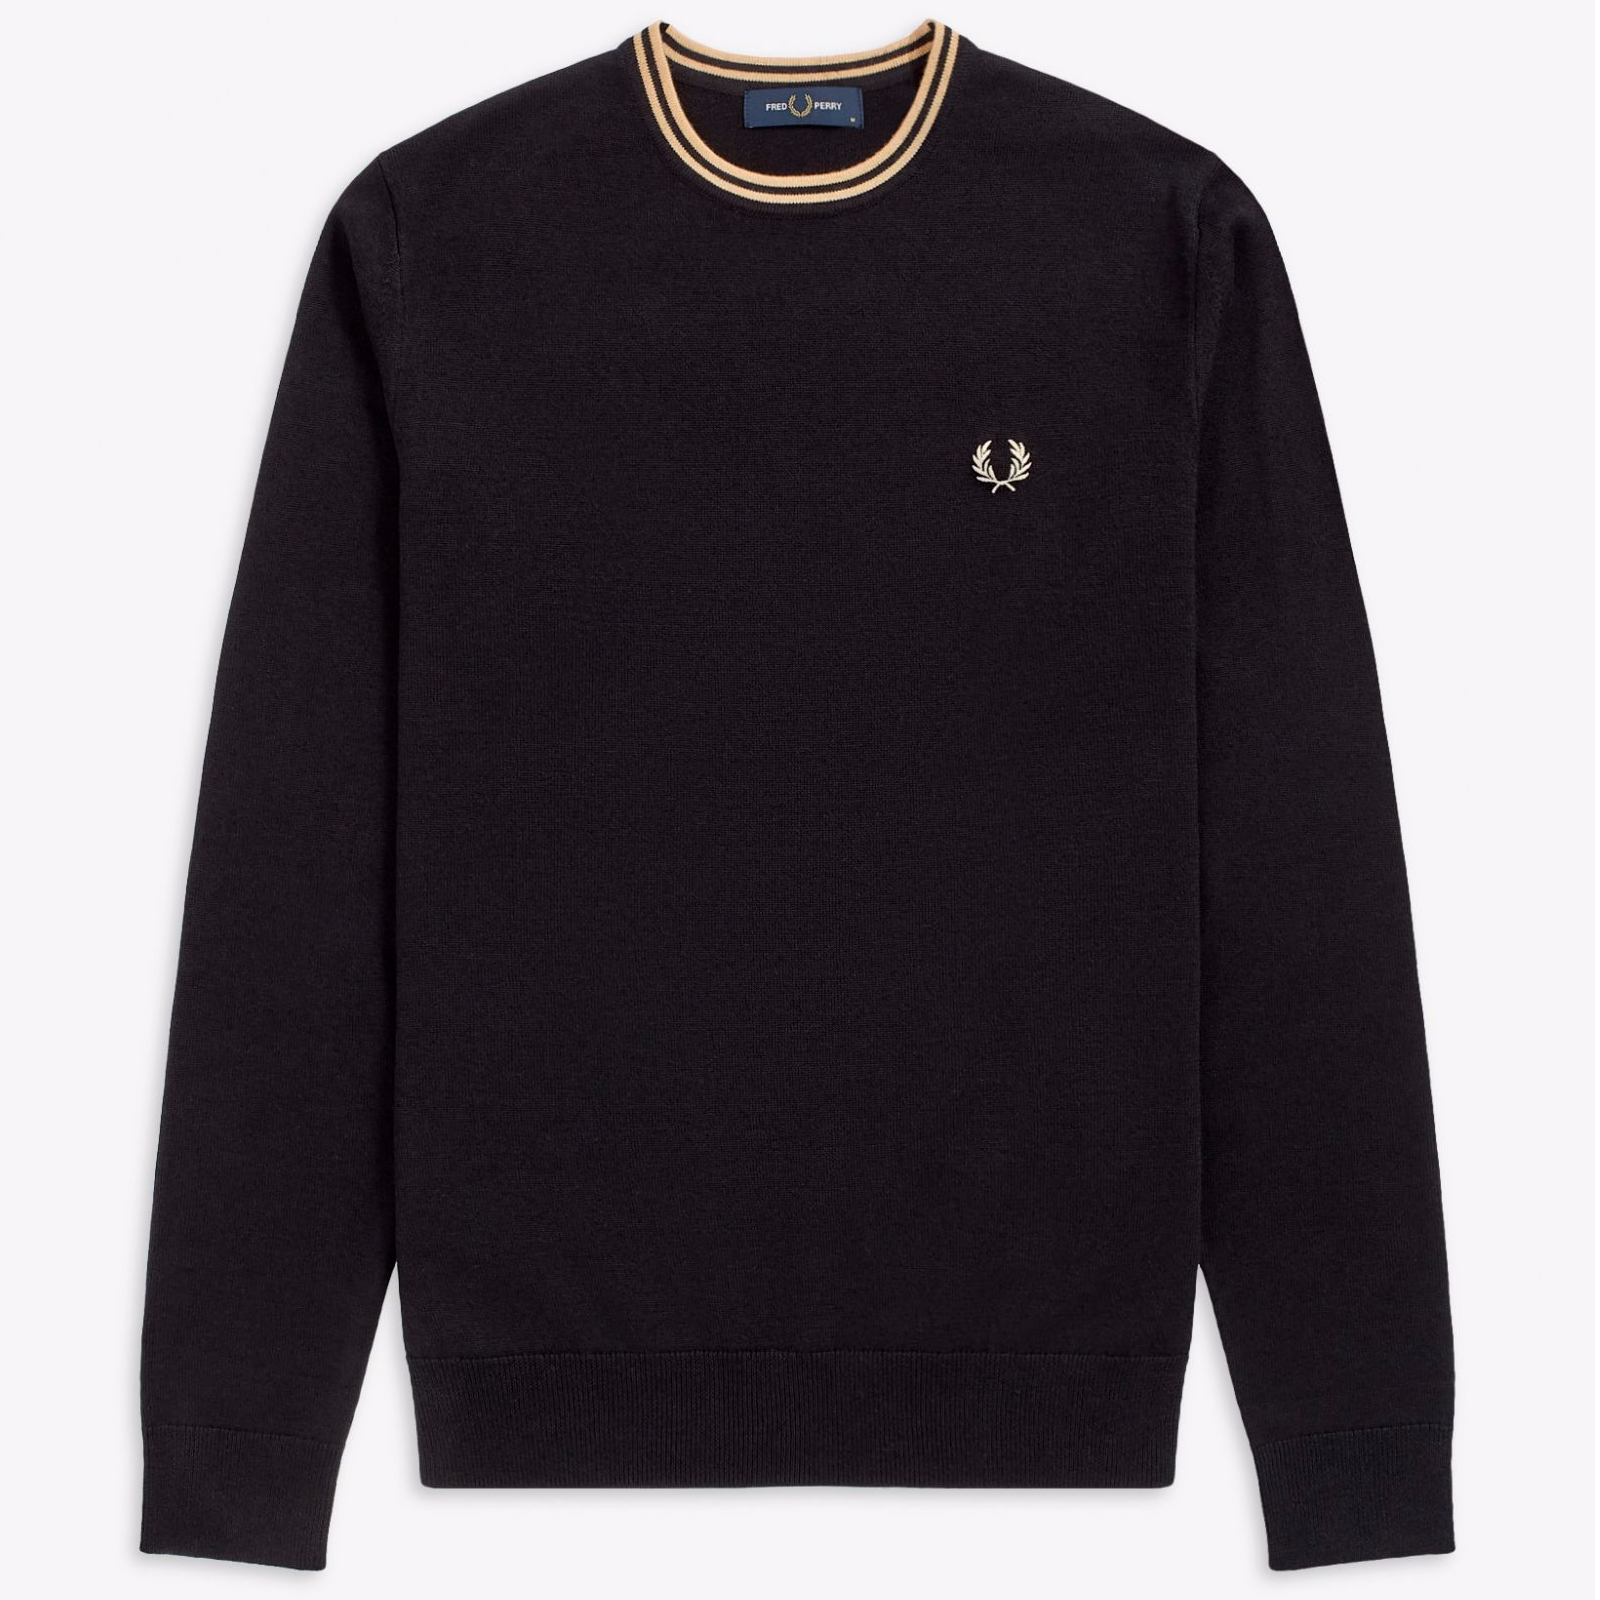 Fred Perry Classic Crew Neck Jumper Black / Champagne